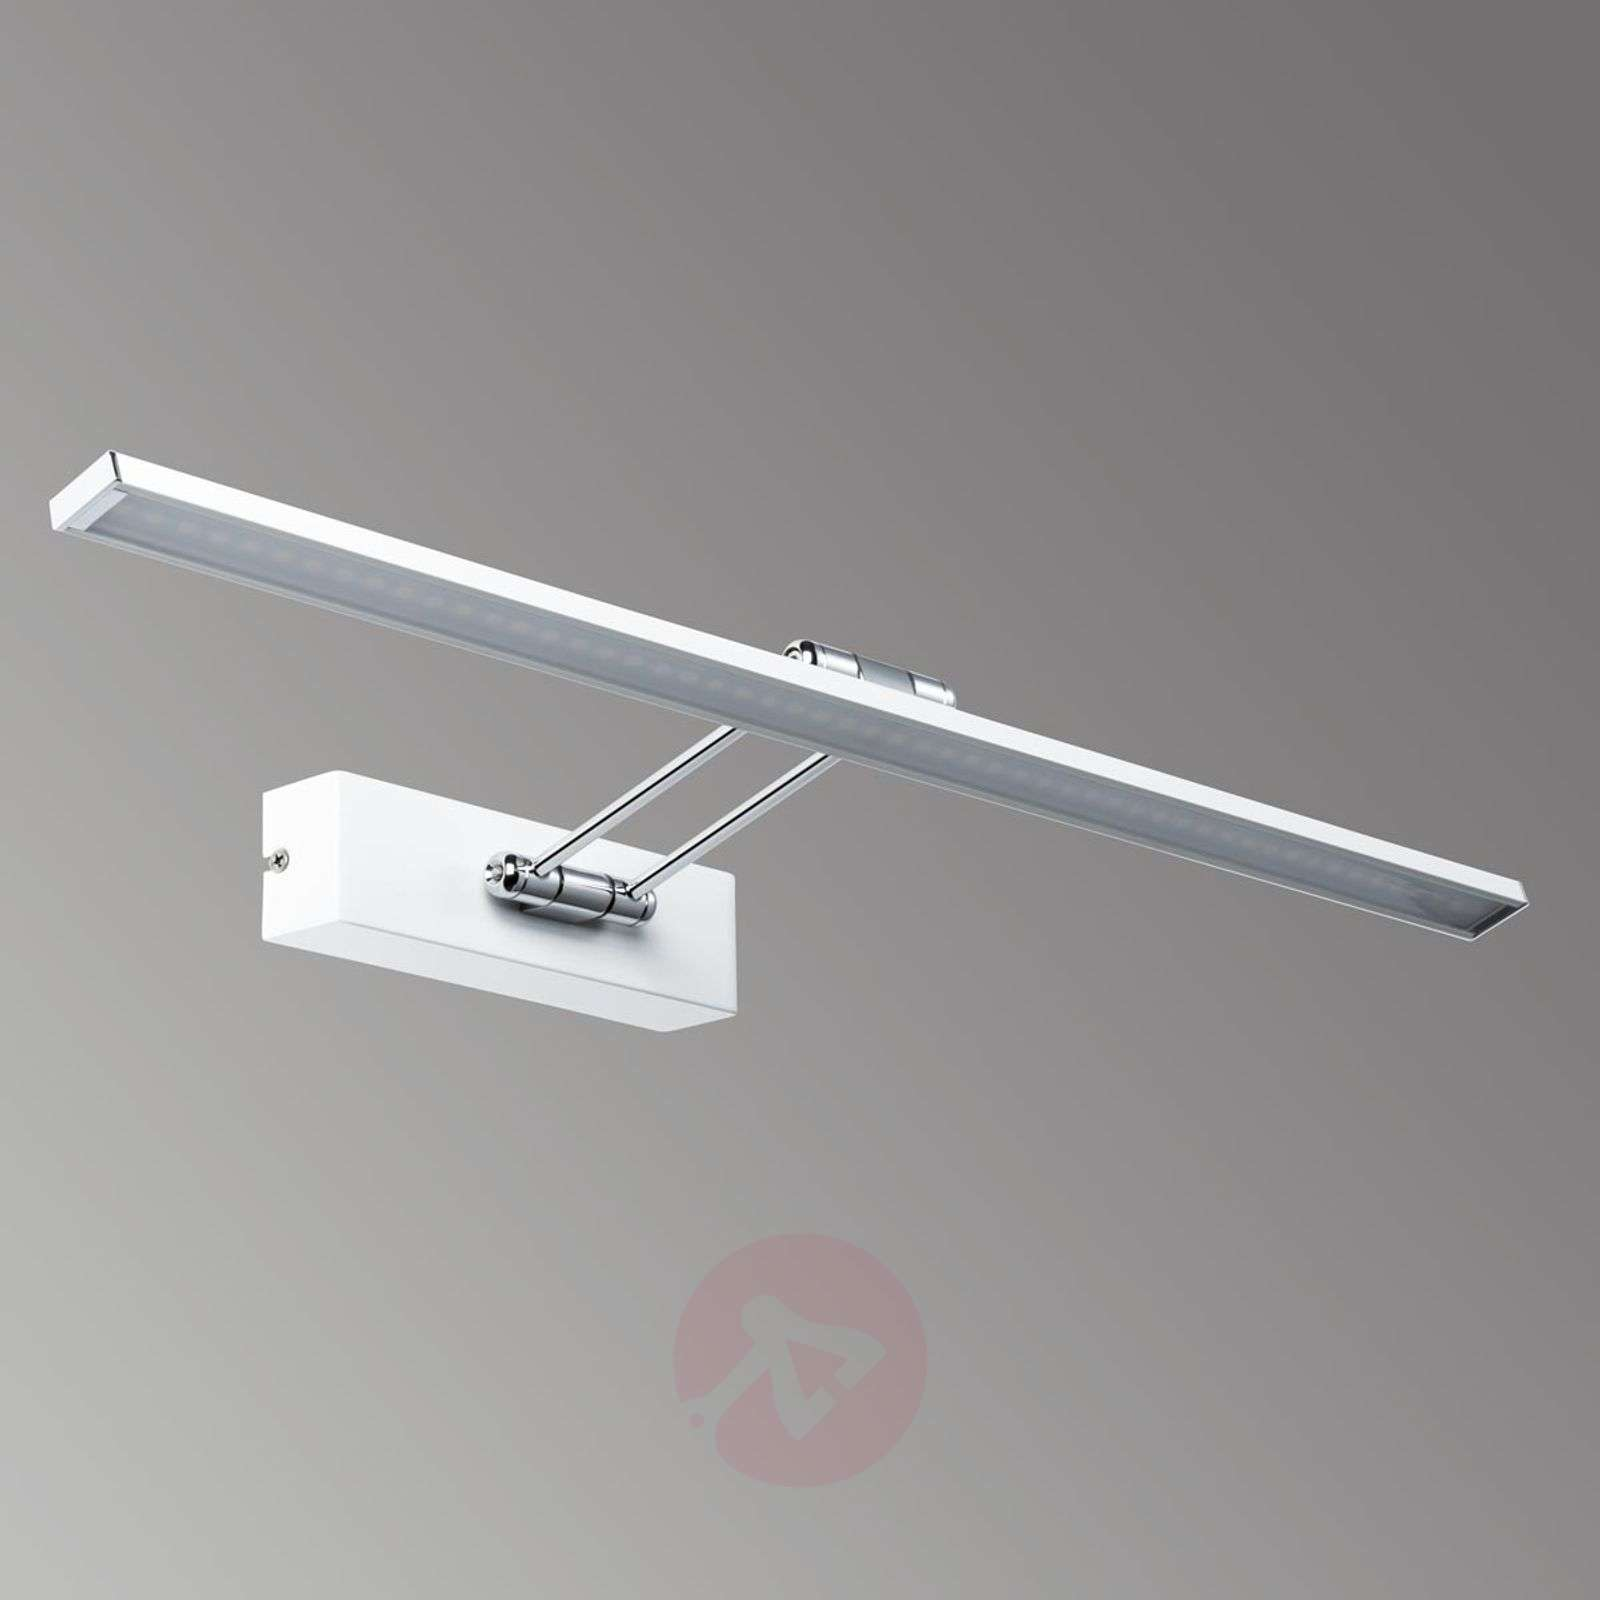 Galeria LED picture light Beam Sixty, white-7600778-01